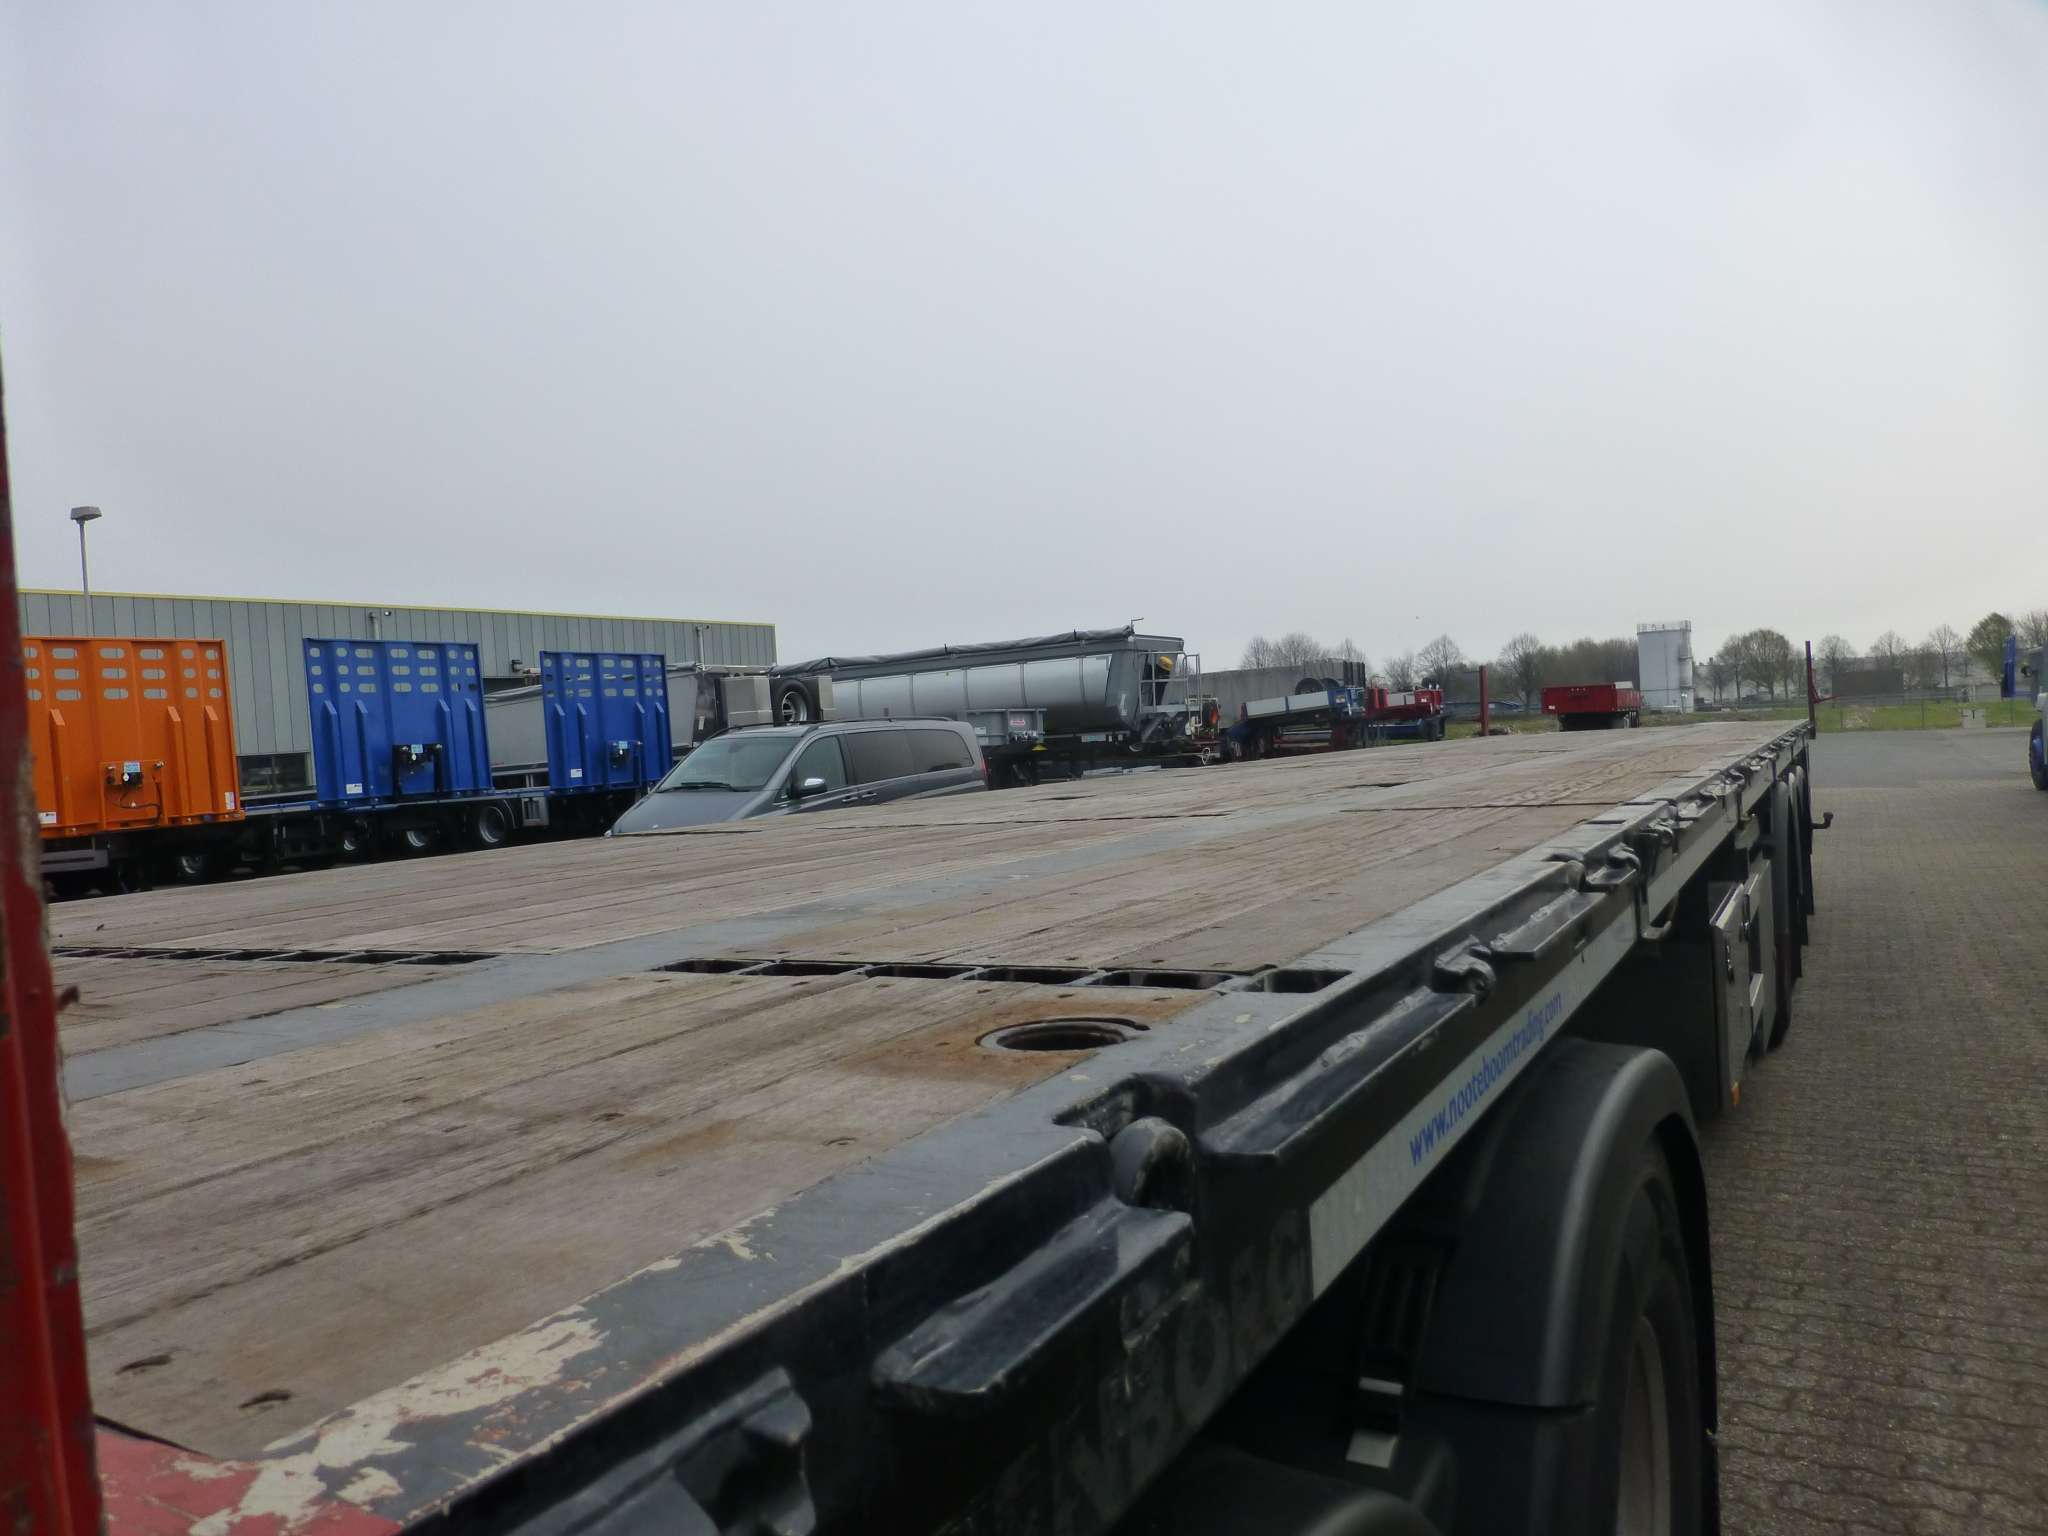 HEAVY DUTY 3 AXLE FLATBED FOR CONCENMTRATED LOAD // WITH TWISTLOCK // PAYLOAD 36 TON